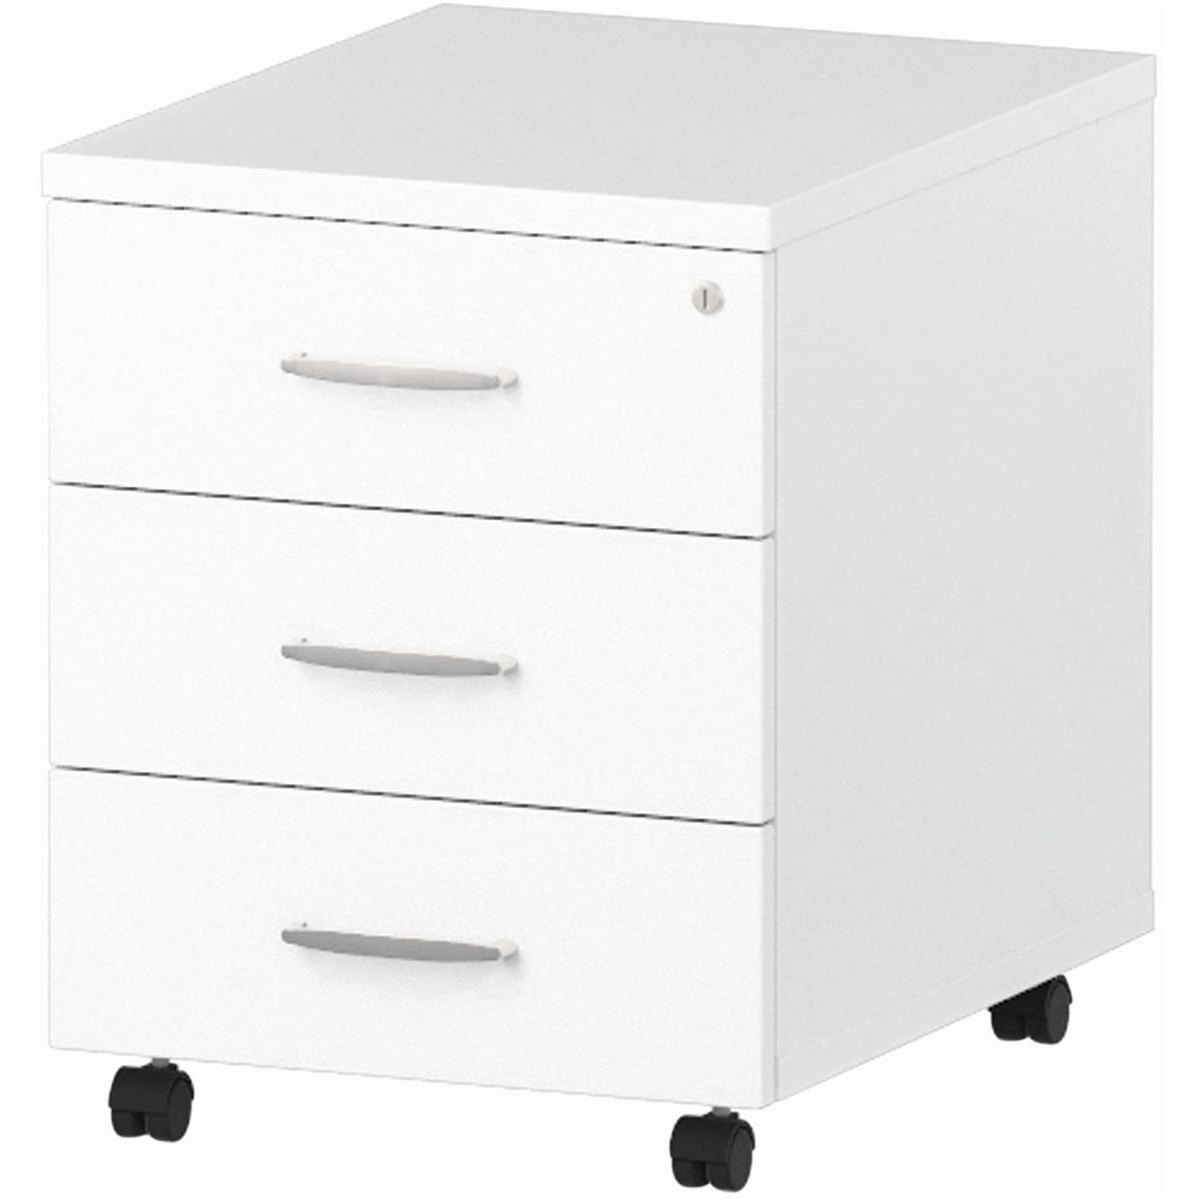 Trexus 3 Drawer Mobile Pedestal 430x500x510mm White Ref I000185